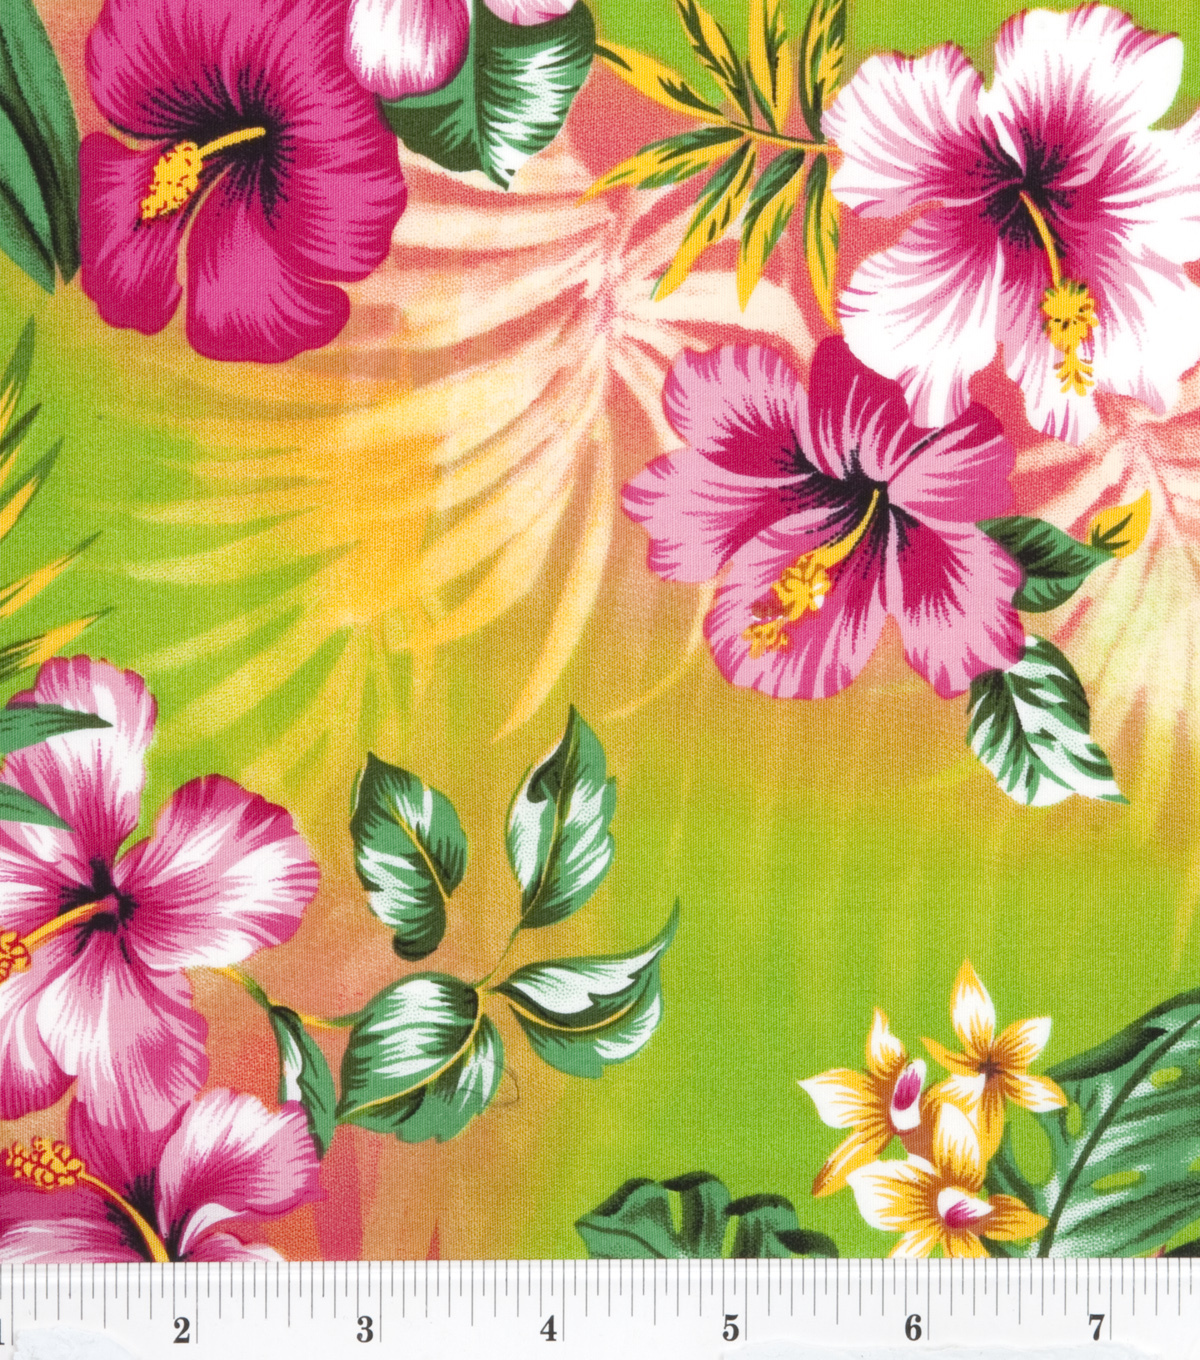 Tropical shirting sorbet hibiscus tropical joann tropical shirting fabric 43u0022 sorbet izmirmasajfo